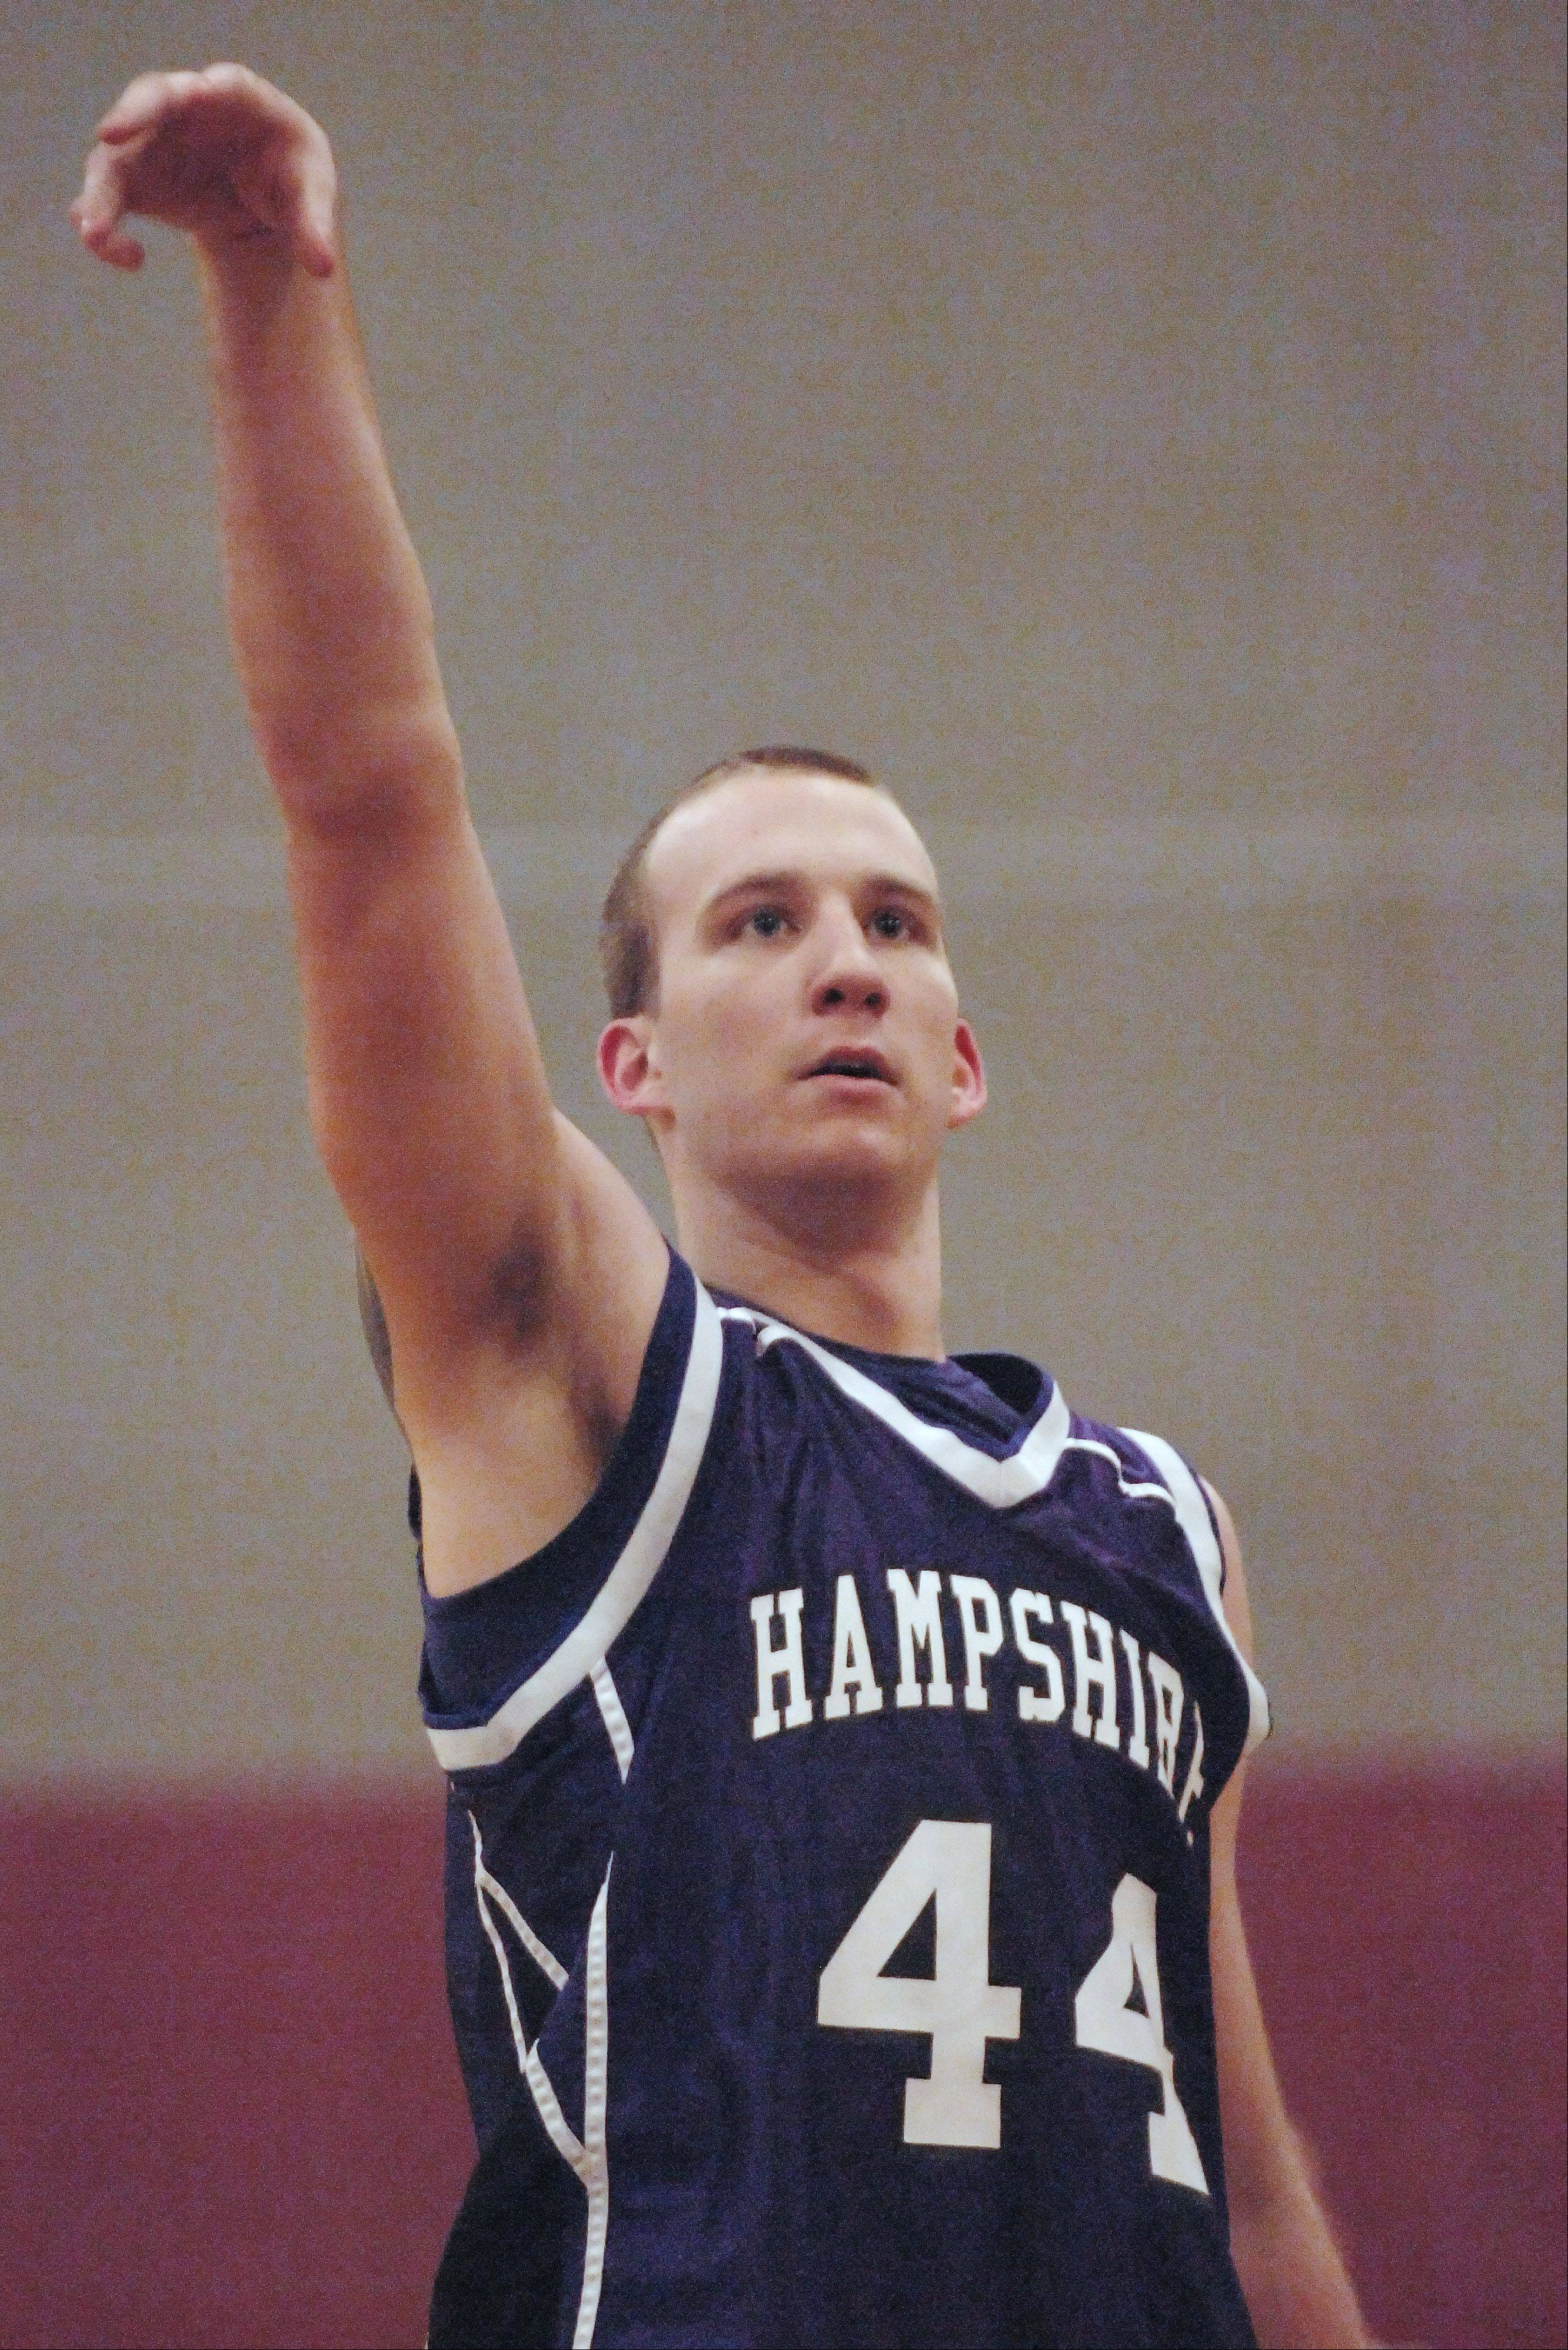 Hampshire's Tyler Watzlawick watches his free throw drop through the net for his 1,000th career point Tuesday in Marengo.